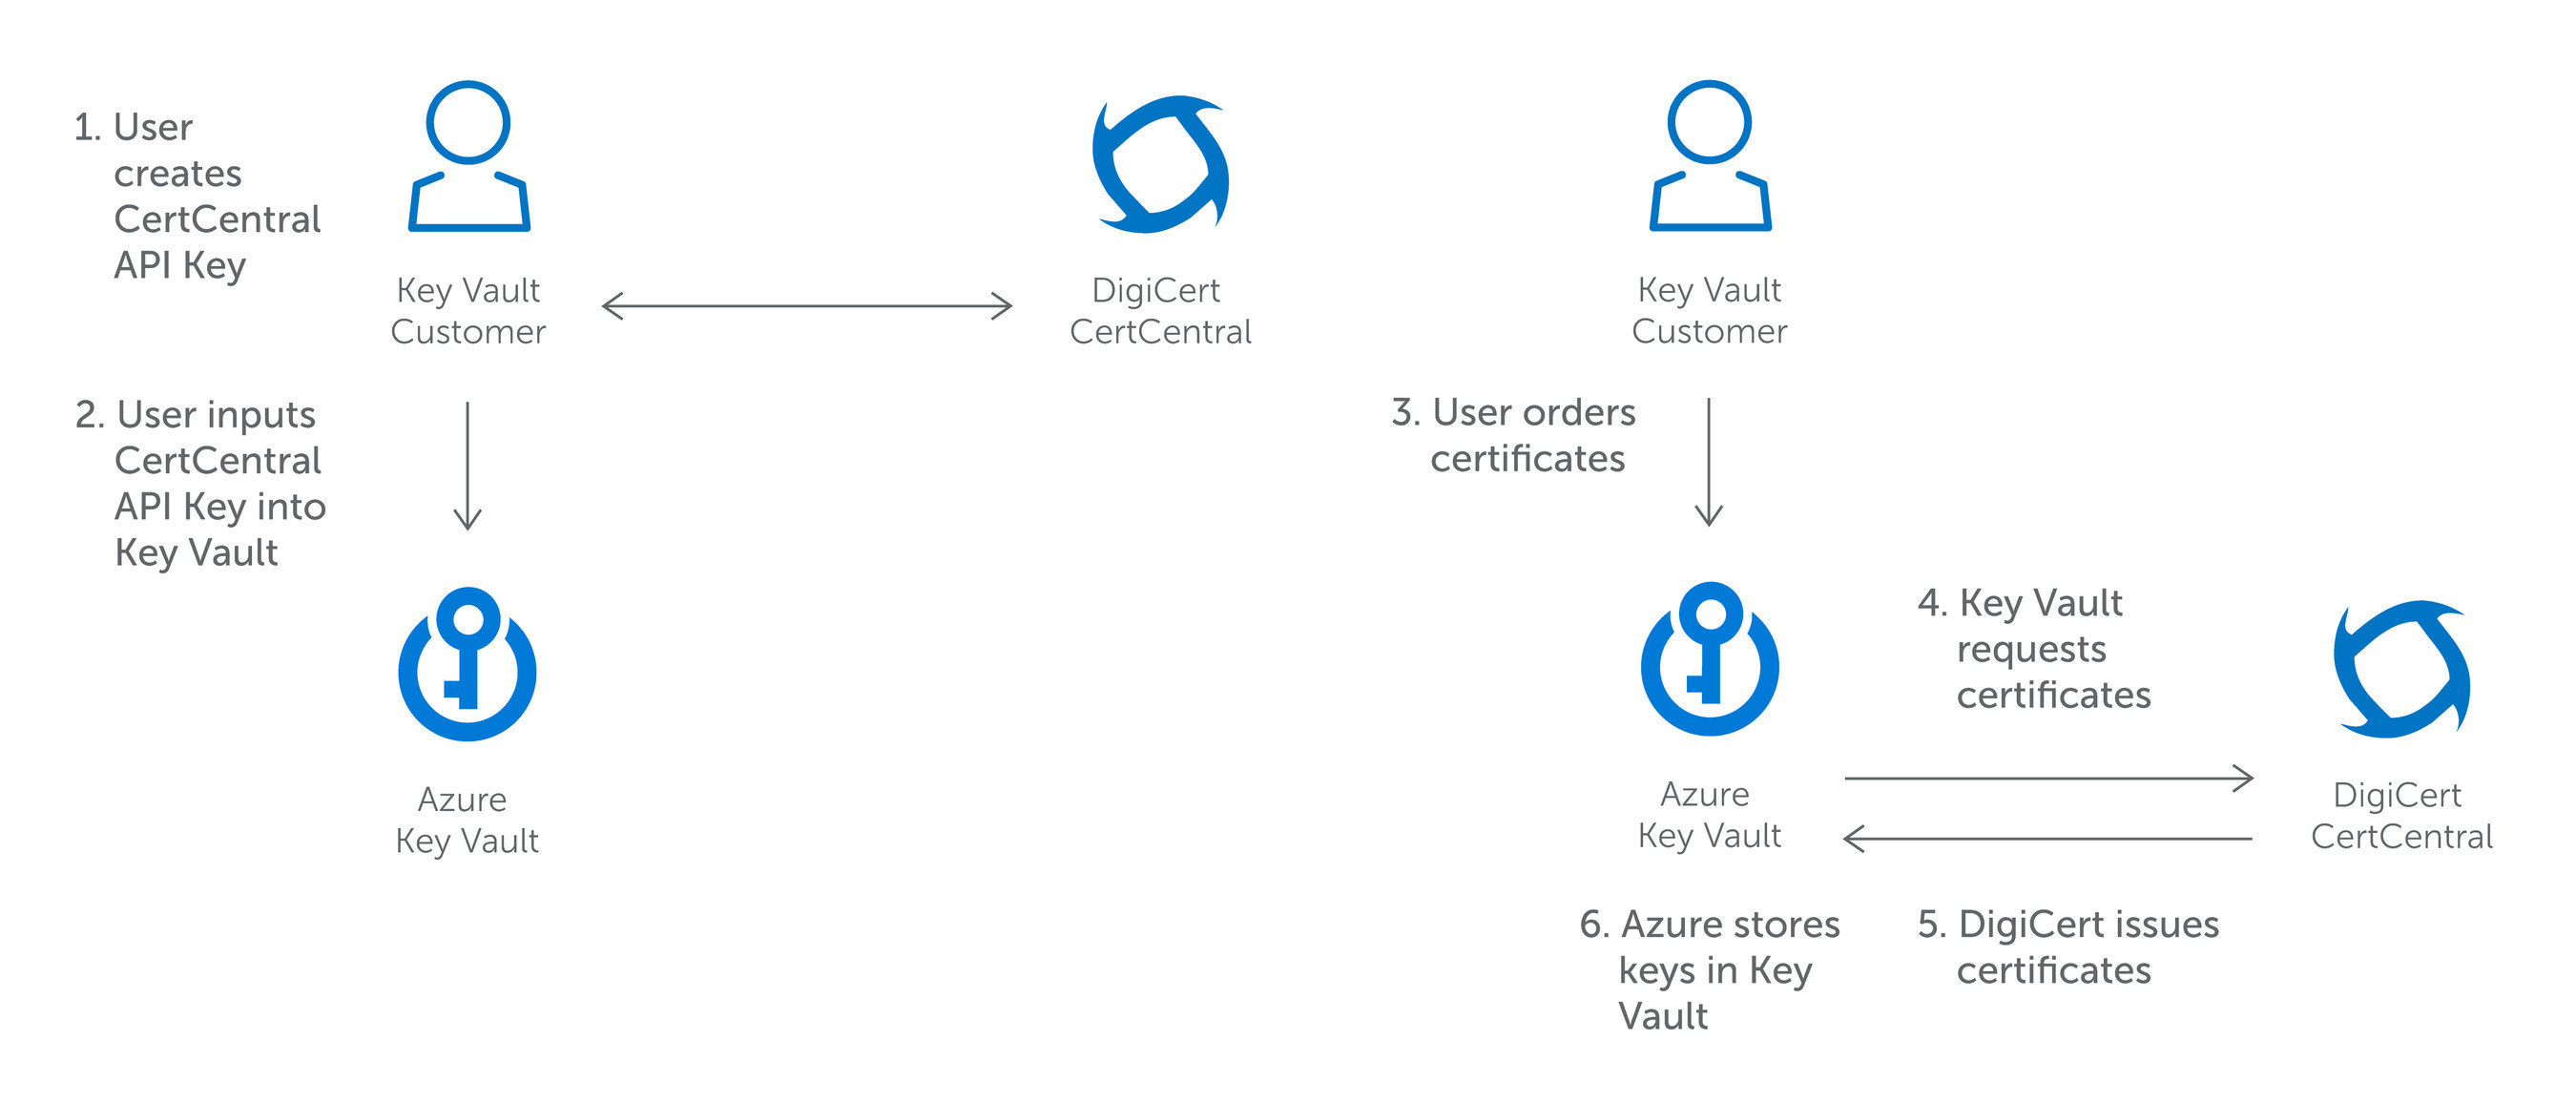 Digicert Leads By Integrating Certificate Issuance With Microsoft